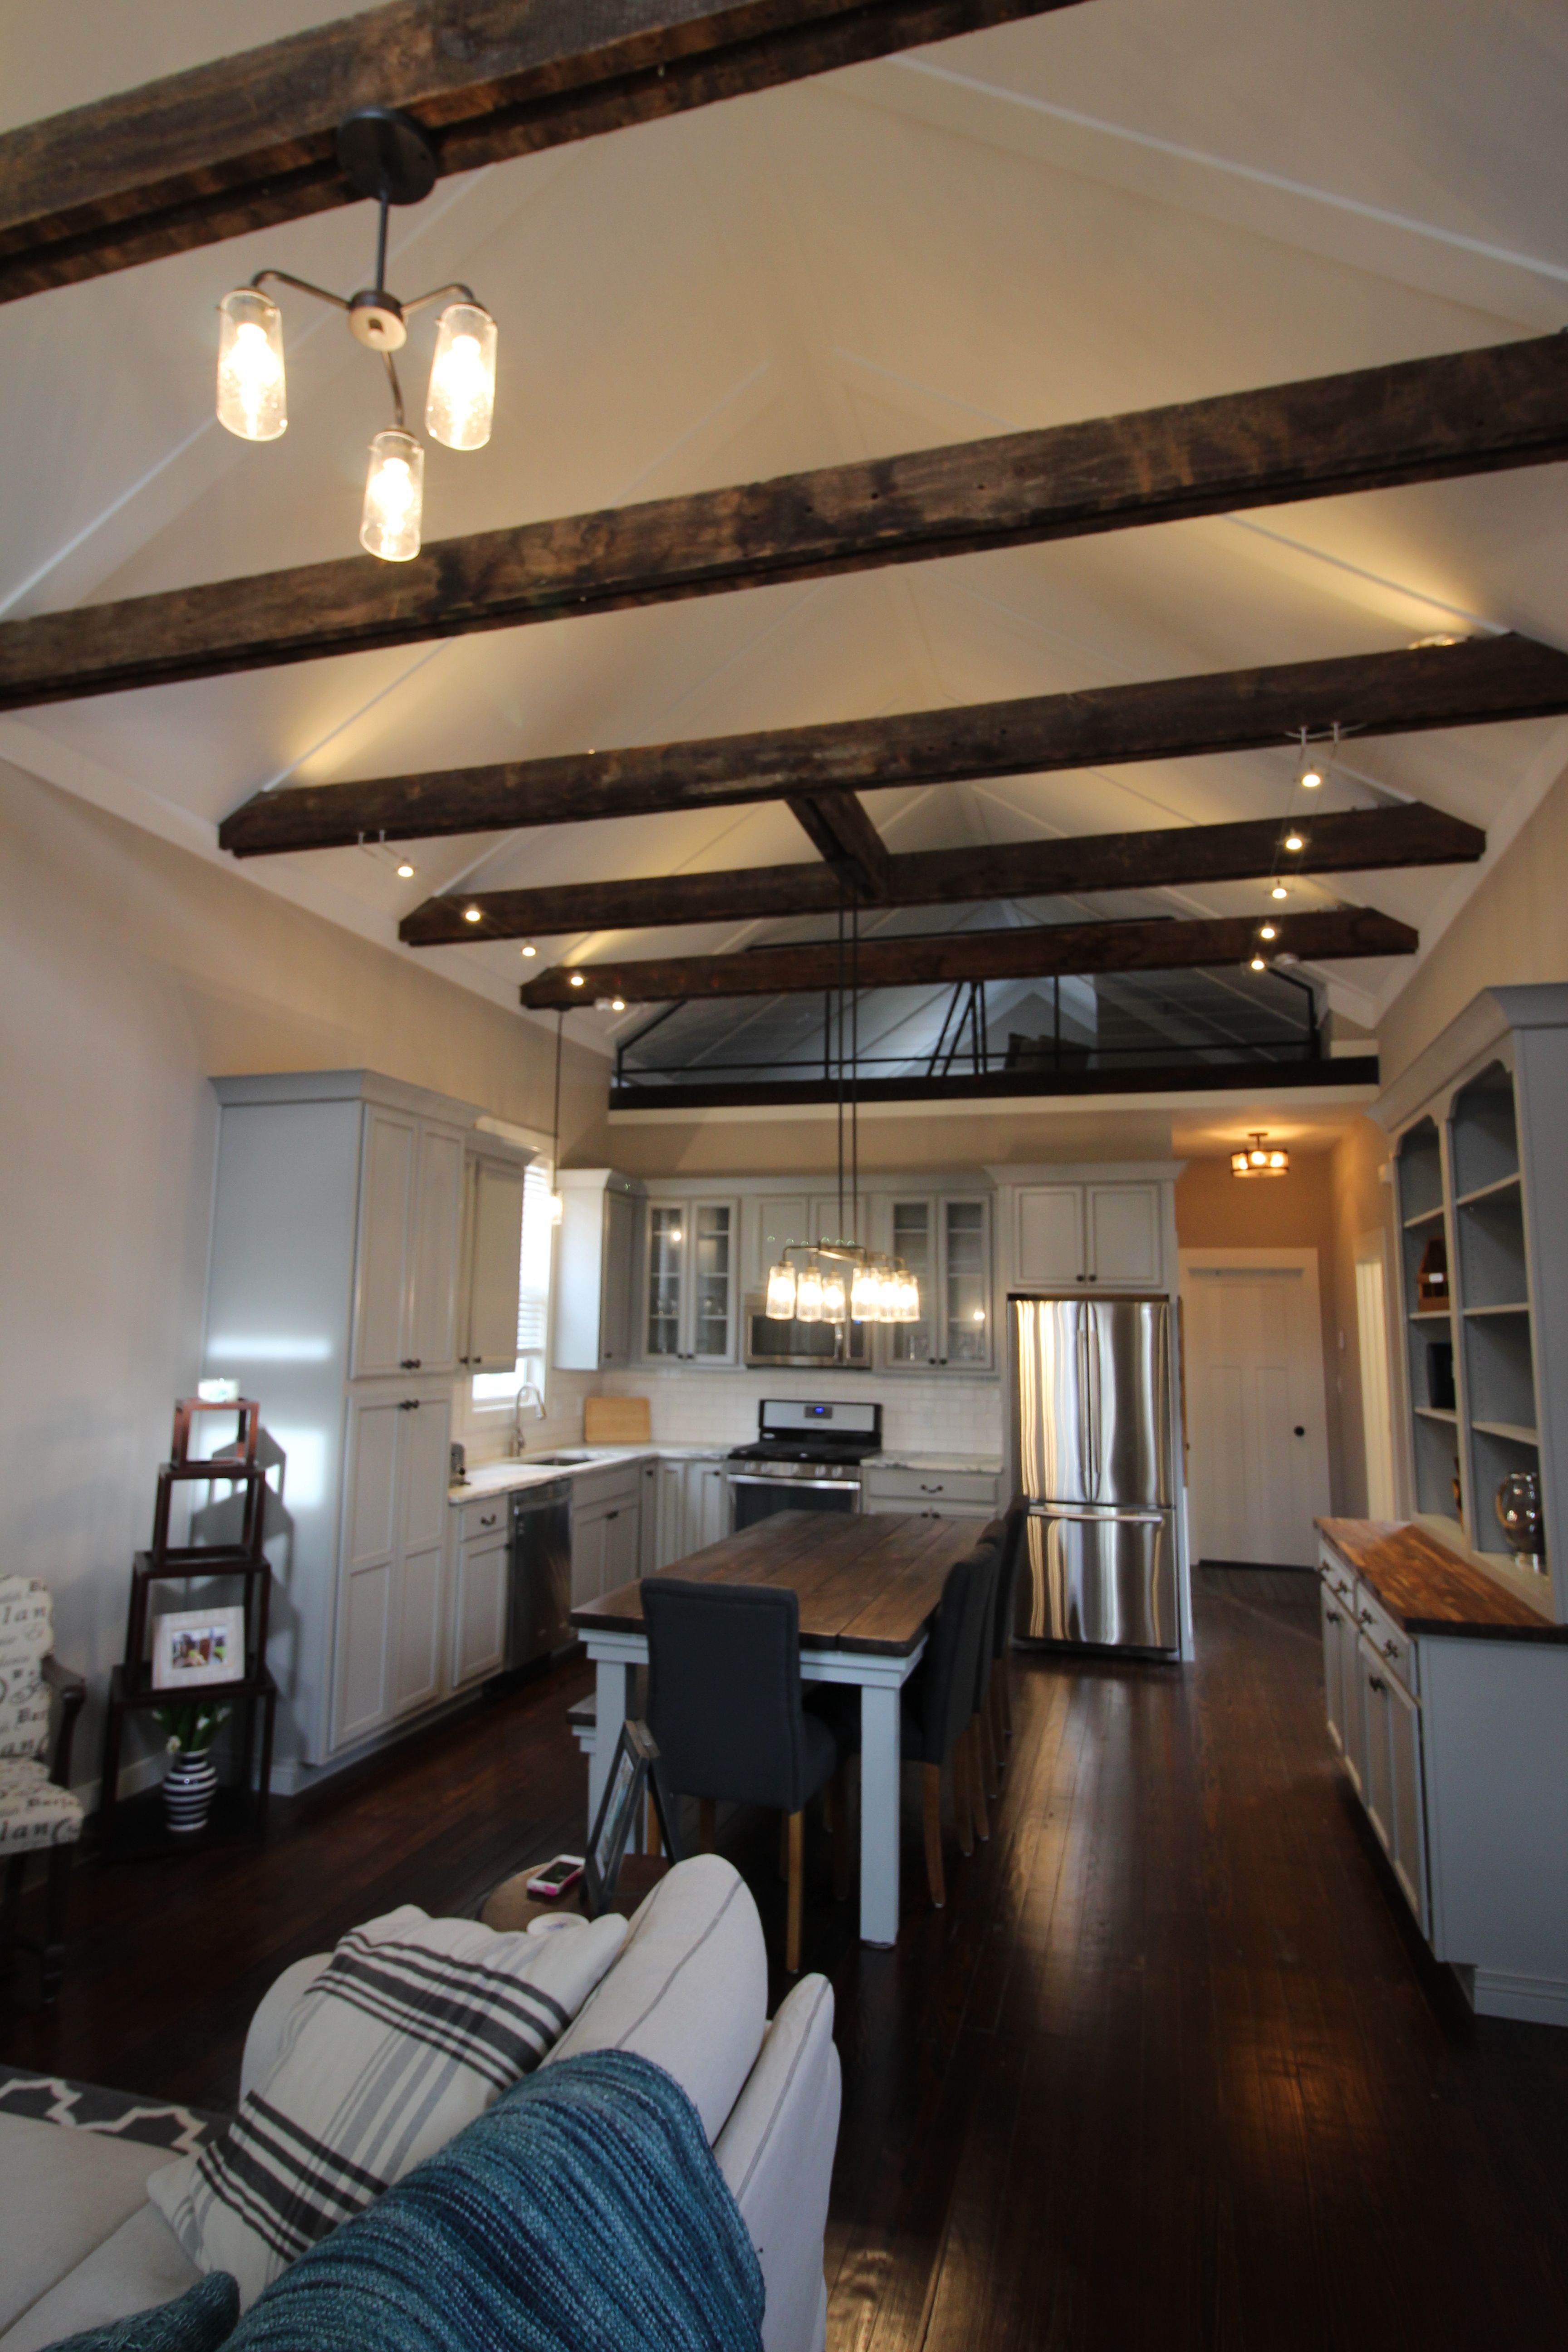 Remodeled shotgun house looks spacious by adding a vaulted ...